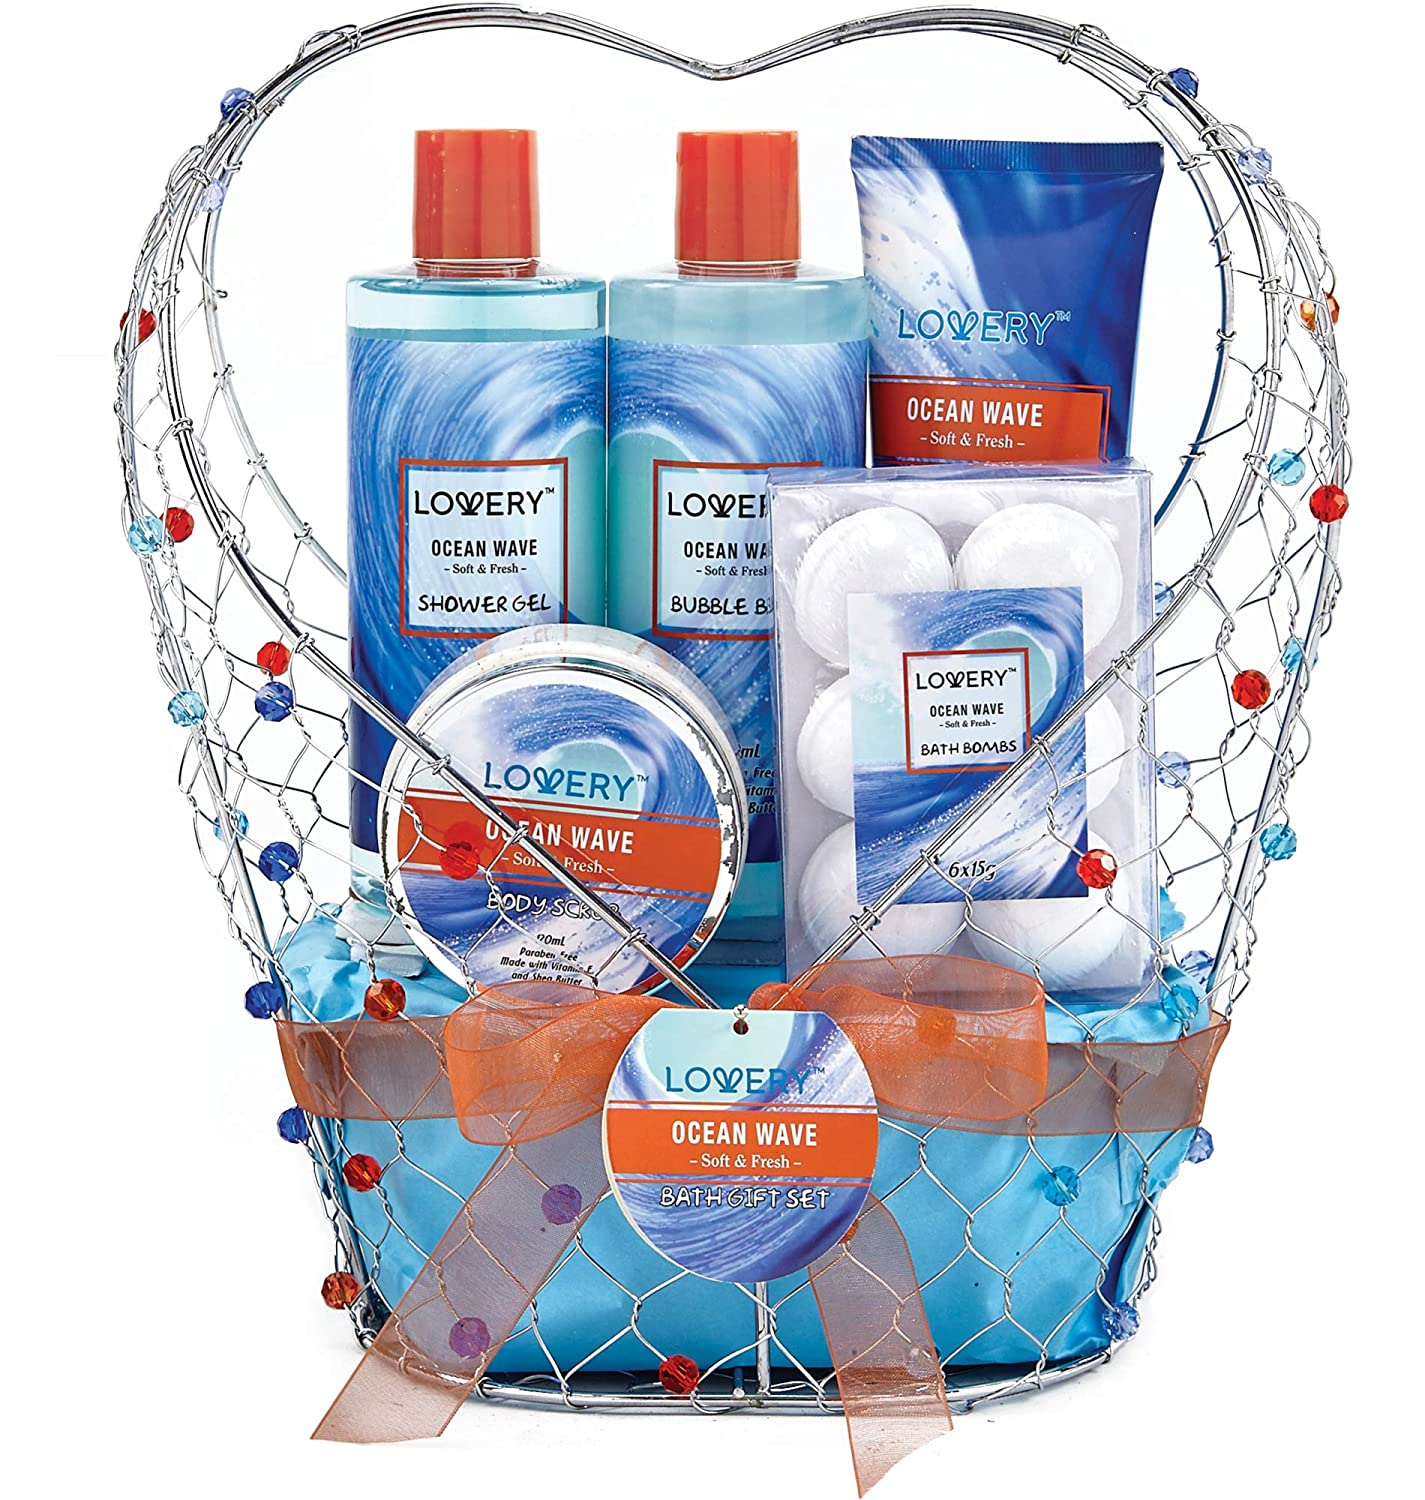 Home Spa Gift Baskets For Women - Bath and Body Gift Basket For Men – Ocean Wave Home Spa Set, Includes Fragrant Lotions, Bath Bombs & More - 11 Piece Set Packaged in Jeweled Heart Shaped Candy Holder